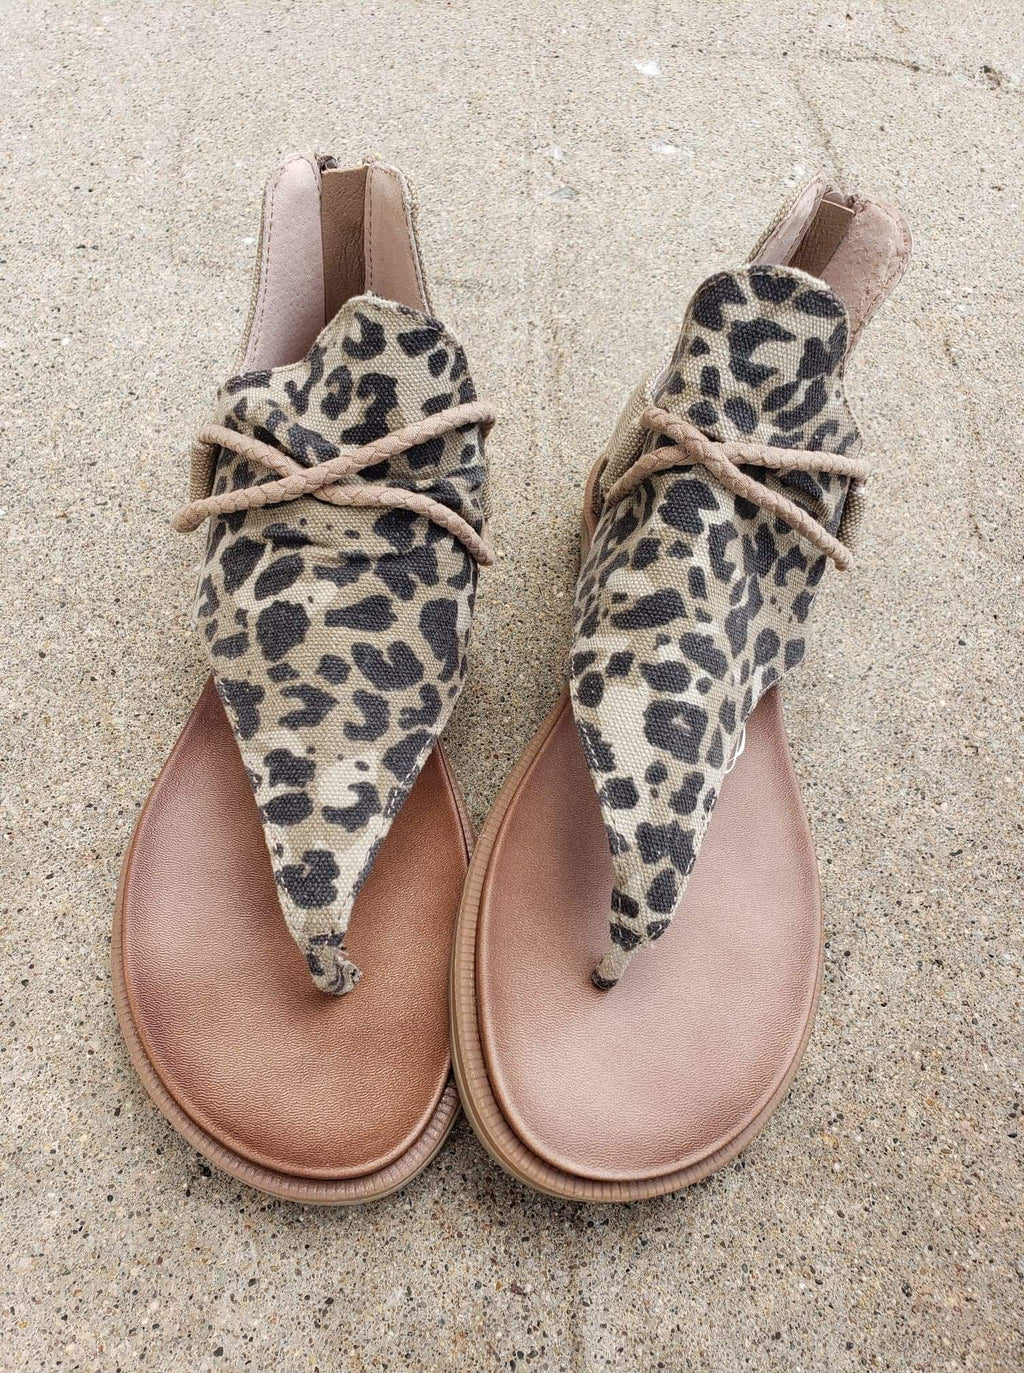 Very G Sparta Sandal - Leopard